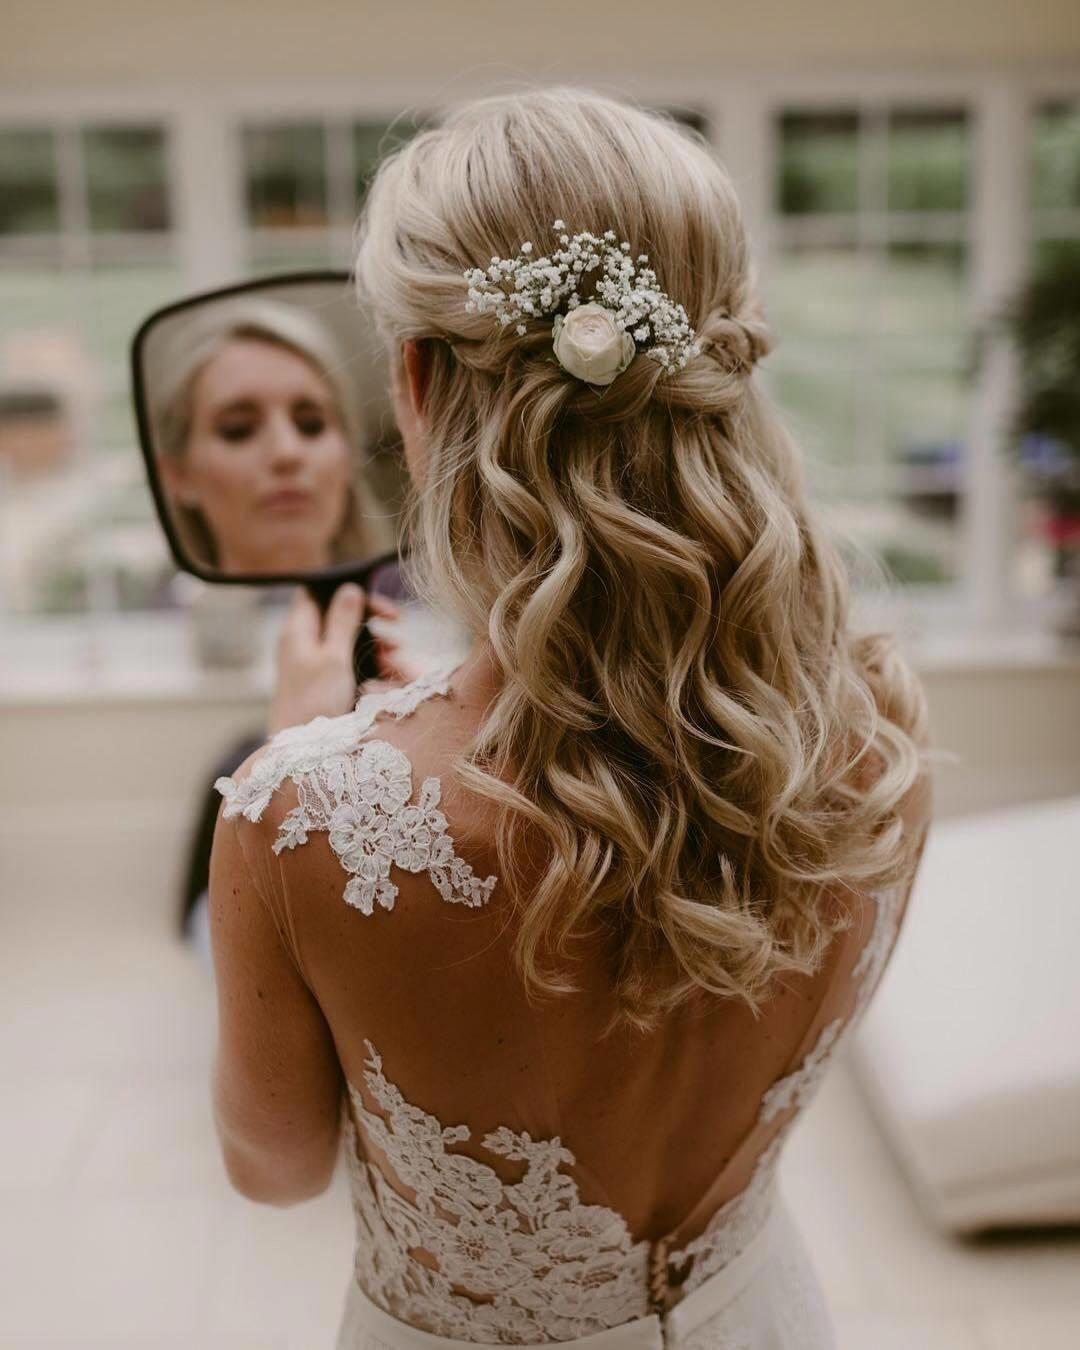 44 Lovely Bridesmaid Hairstyles Wedding Hairstyles For Your